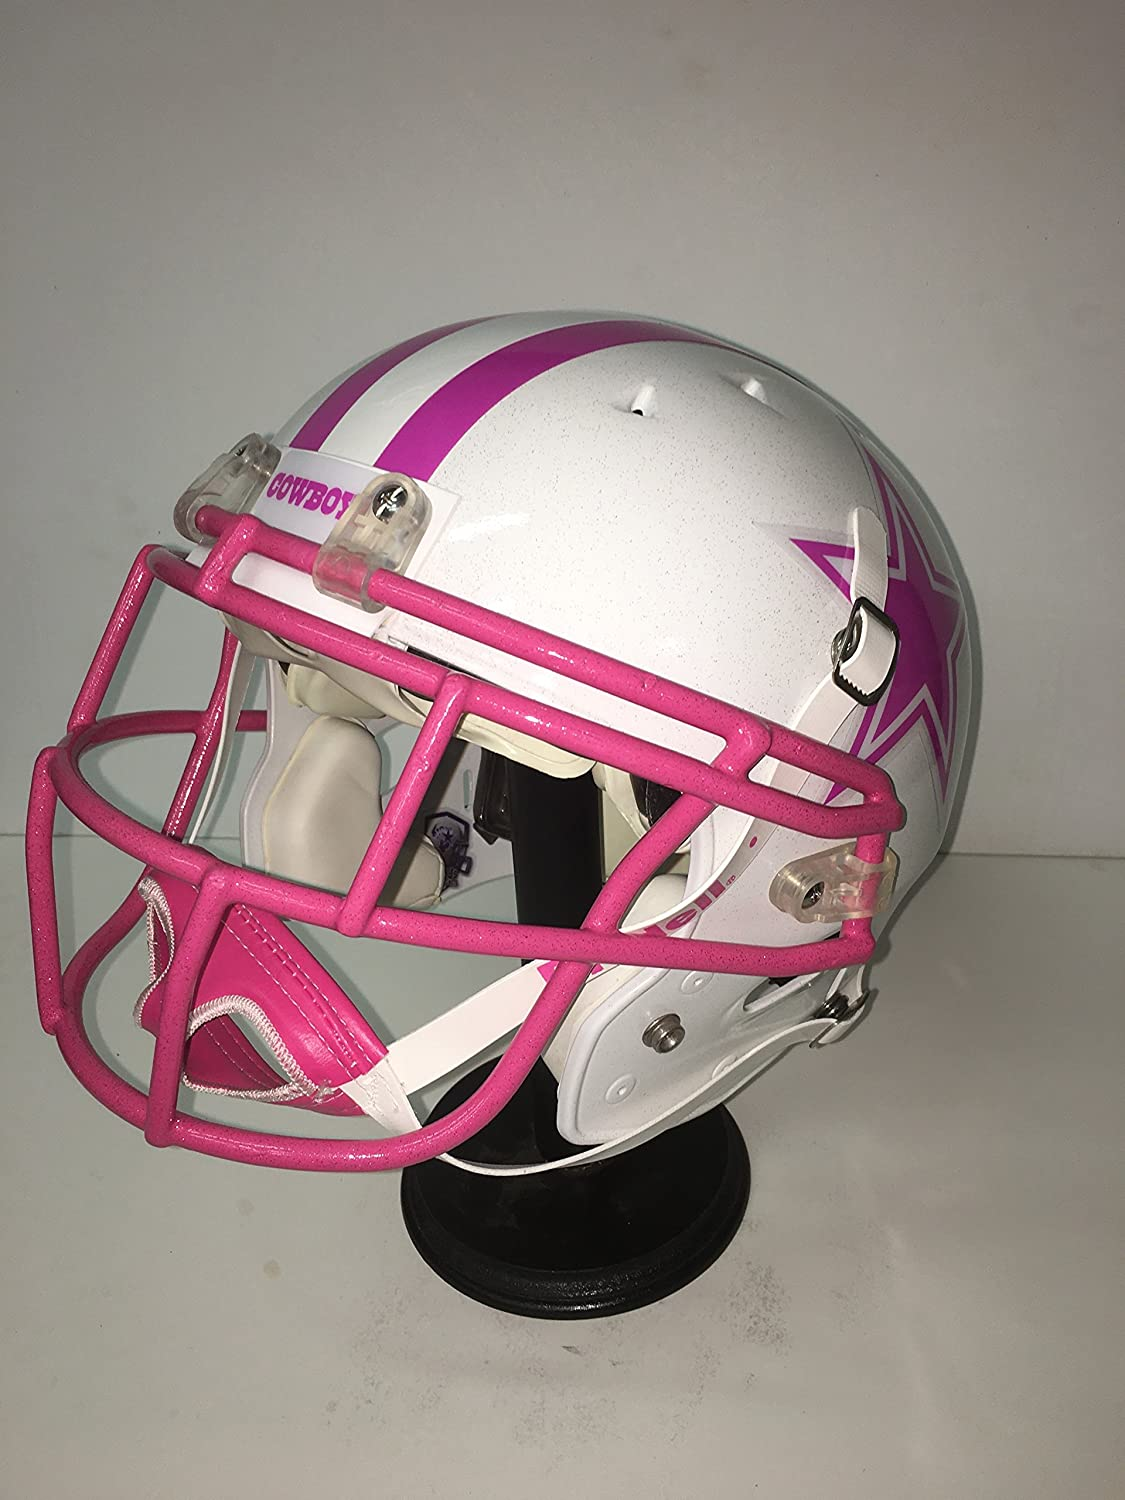 a6cf2a4d0f4 Amazon.com: Rare New Dallas Cowboys Professional, Custom Designed & Painted  White & Pink Football Helmet! Breast Cancer Awareness!: Sports Collectibles